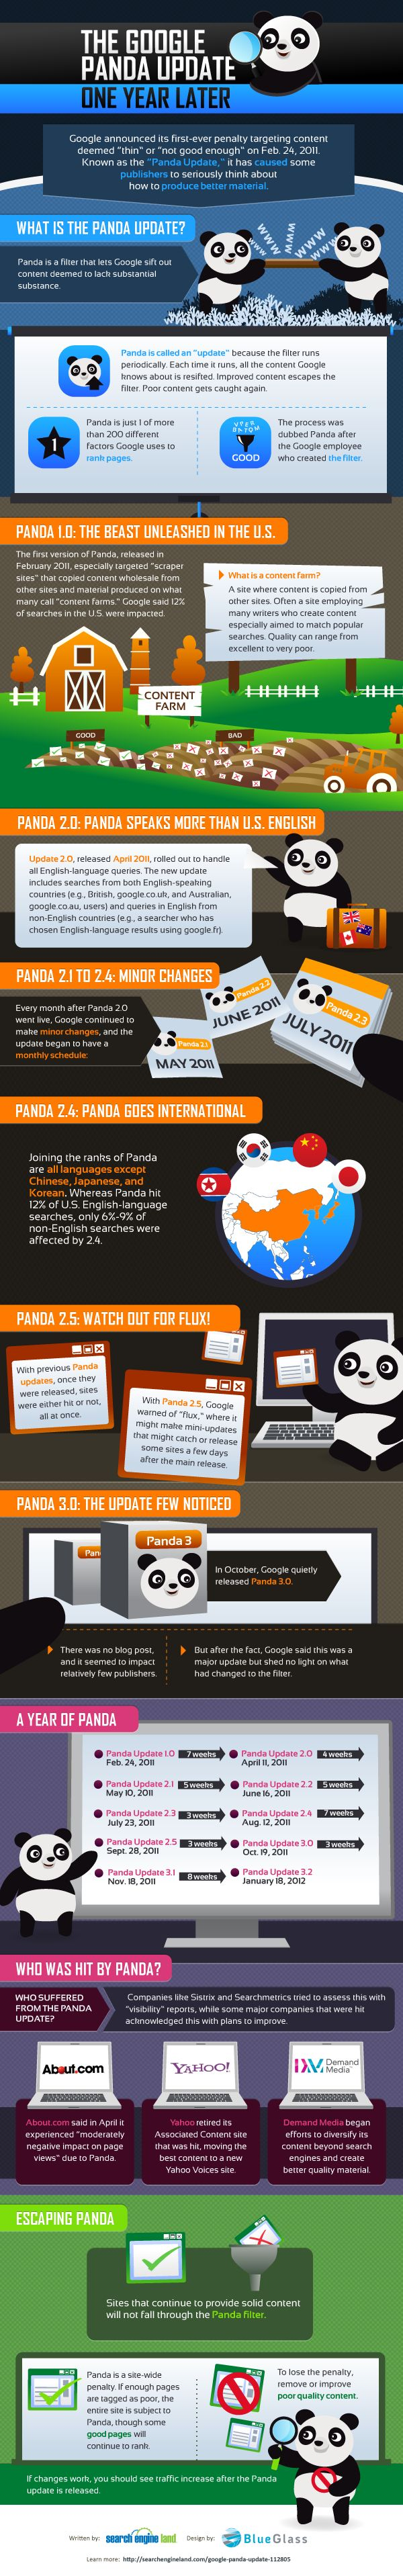 One year in with Google Panda